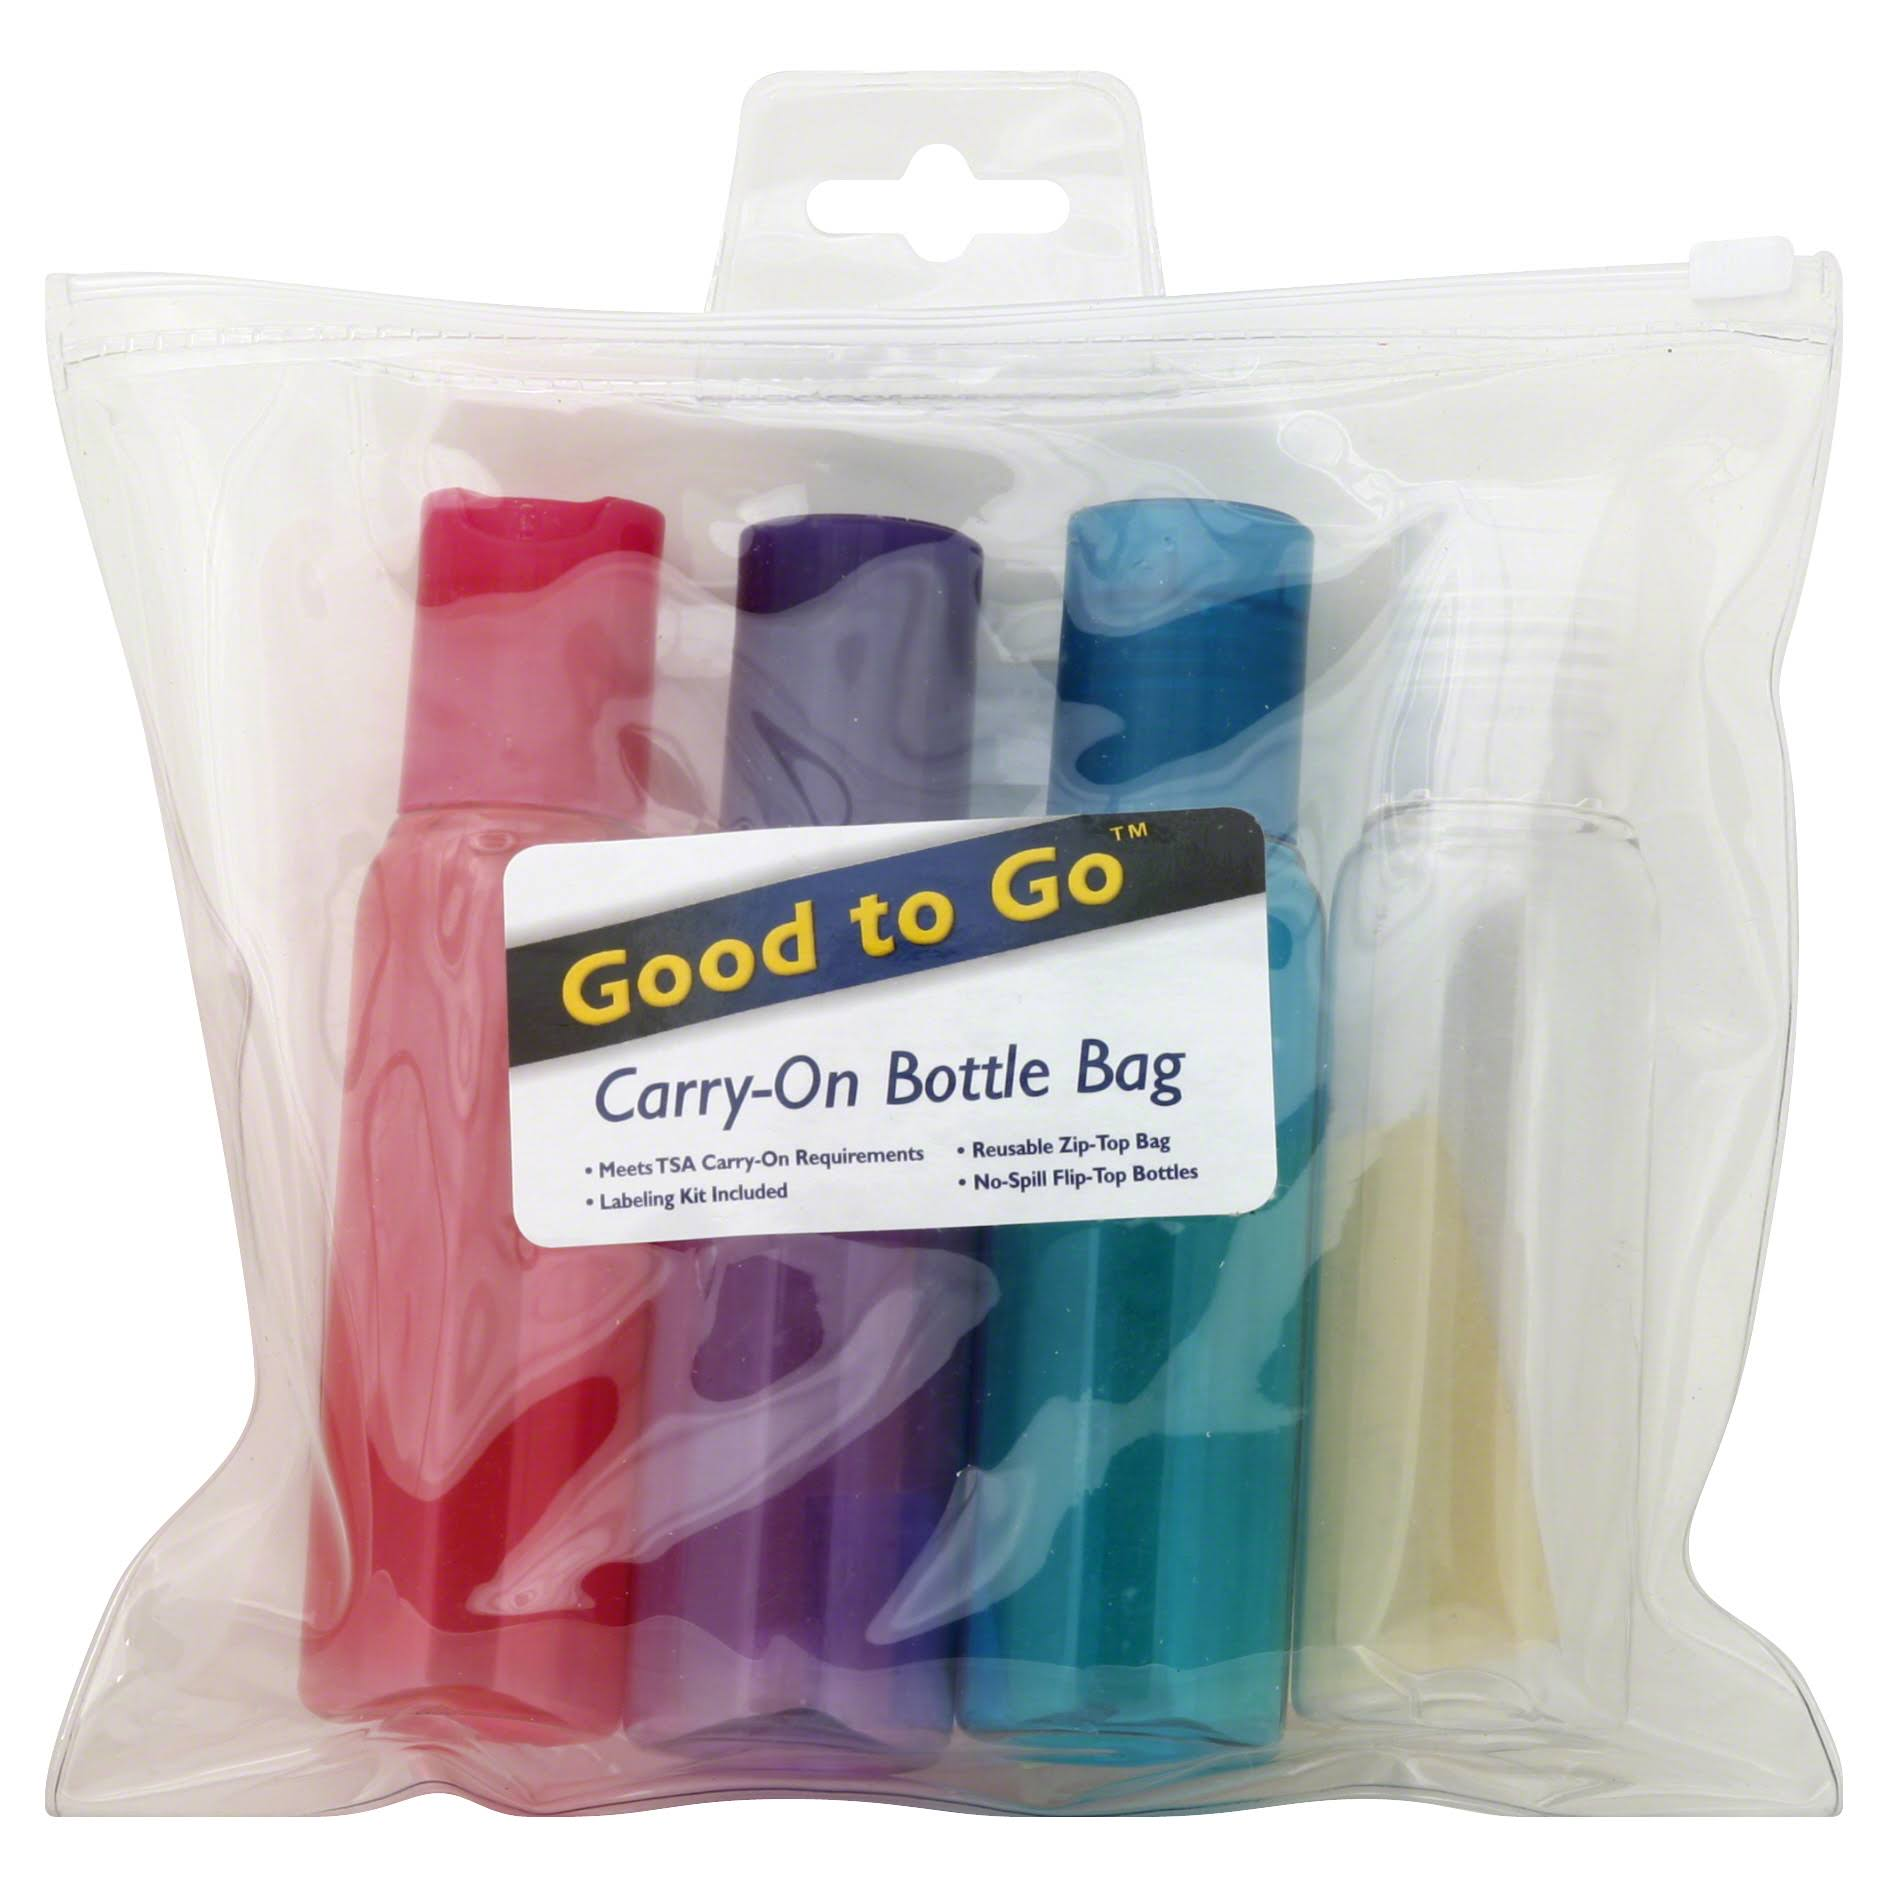 Good to Go Aeroplane Bottle Kit - Travel Size